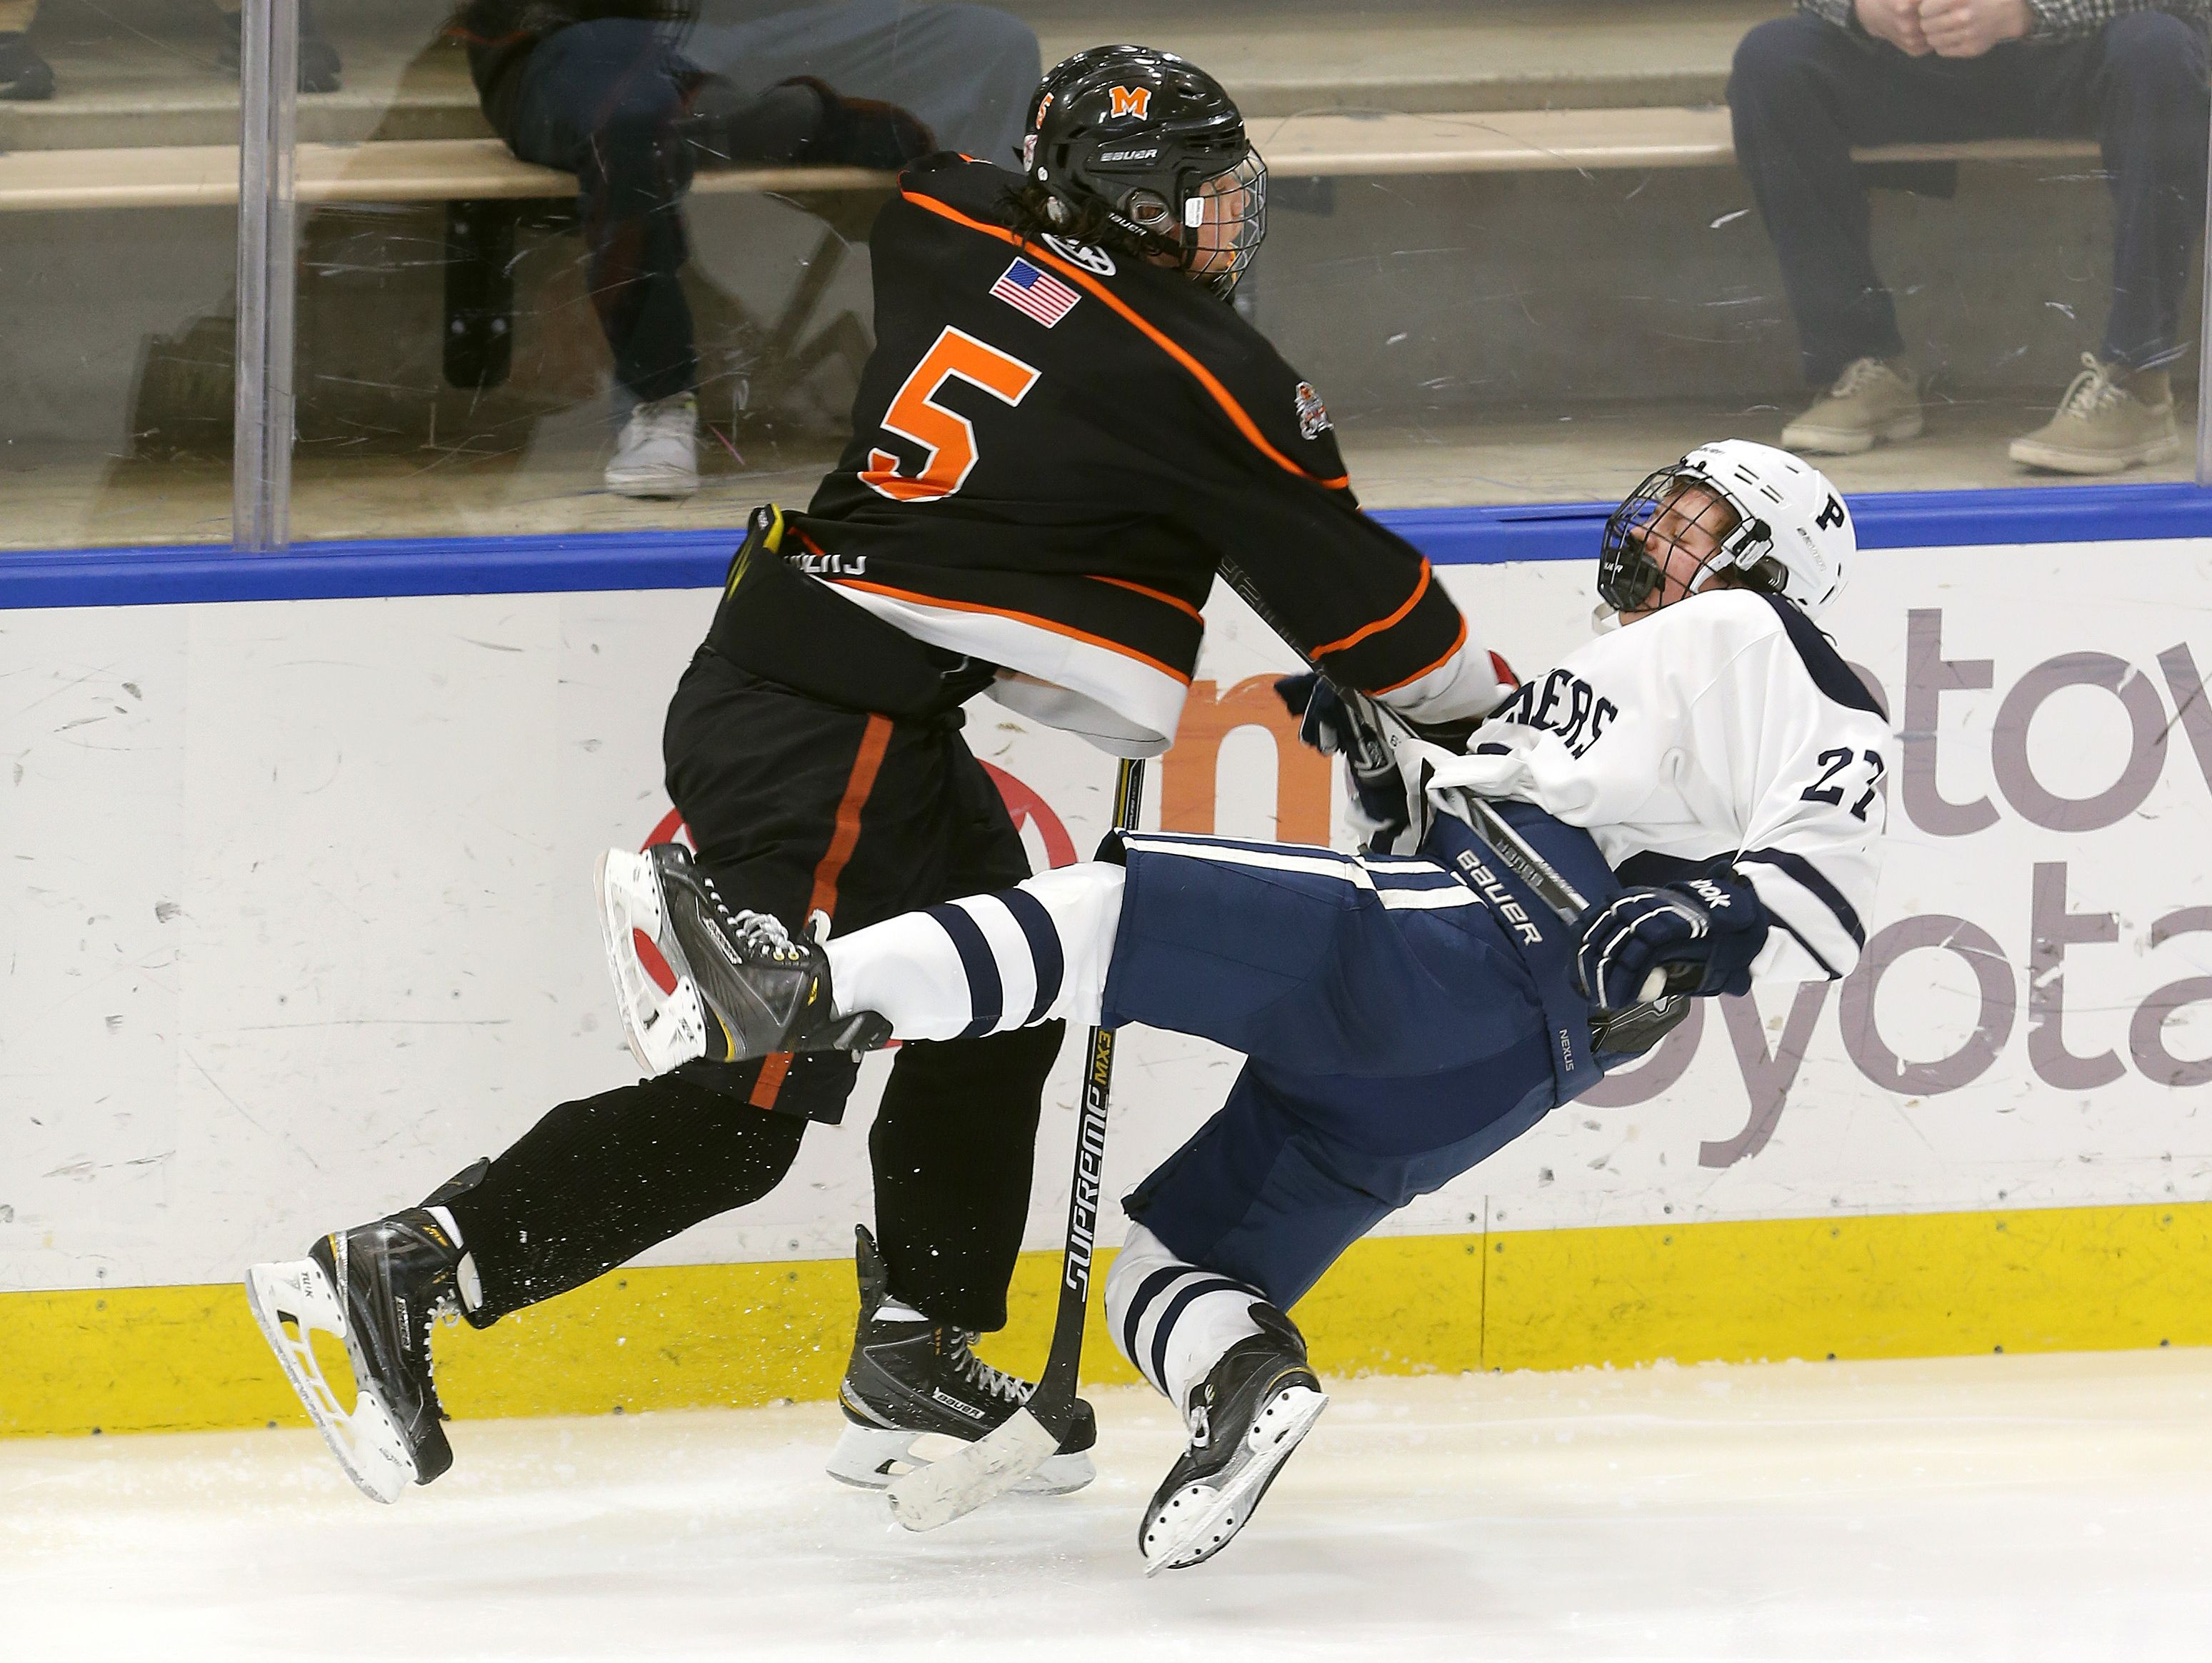 Pittsford's John Mozrall is checked to the ice by Mamaroneck's Jake Levine (5).